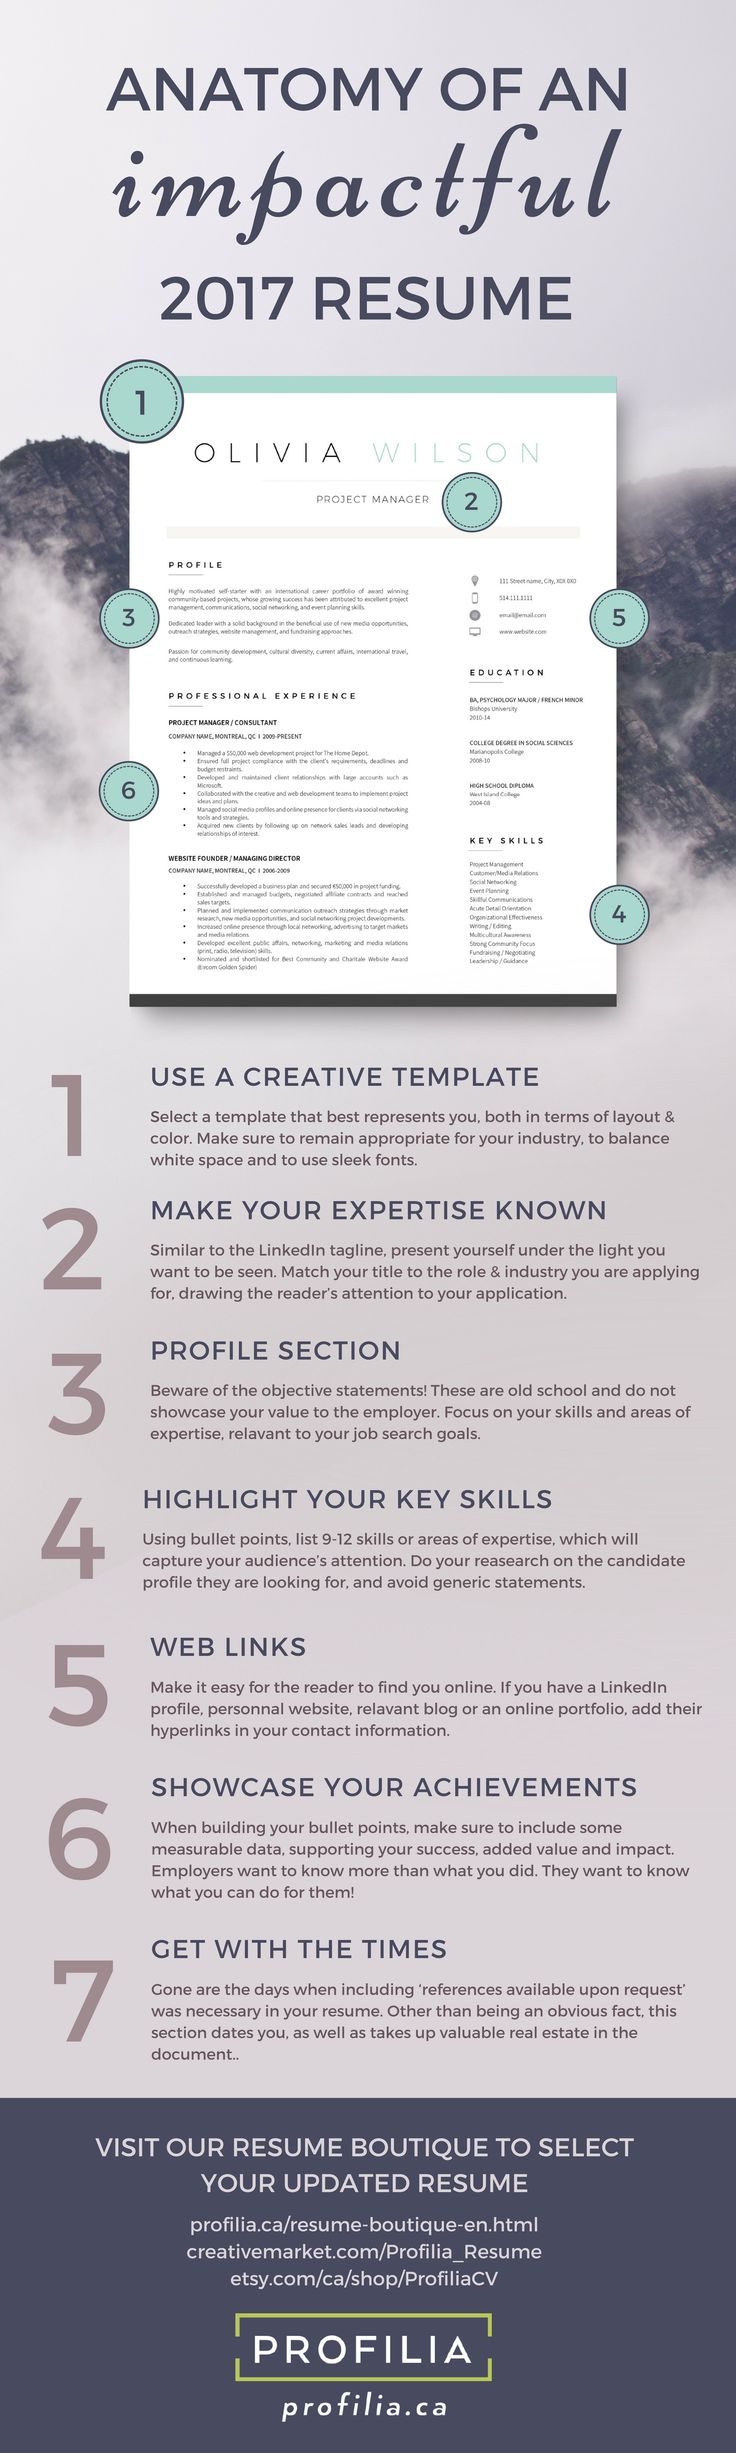 How To Make A Perfect Resume Step By Step Simple 387 Best Resumes Images On Pinterest  Resume Career And Cover .